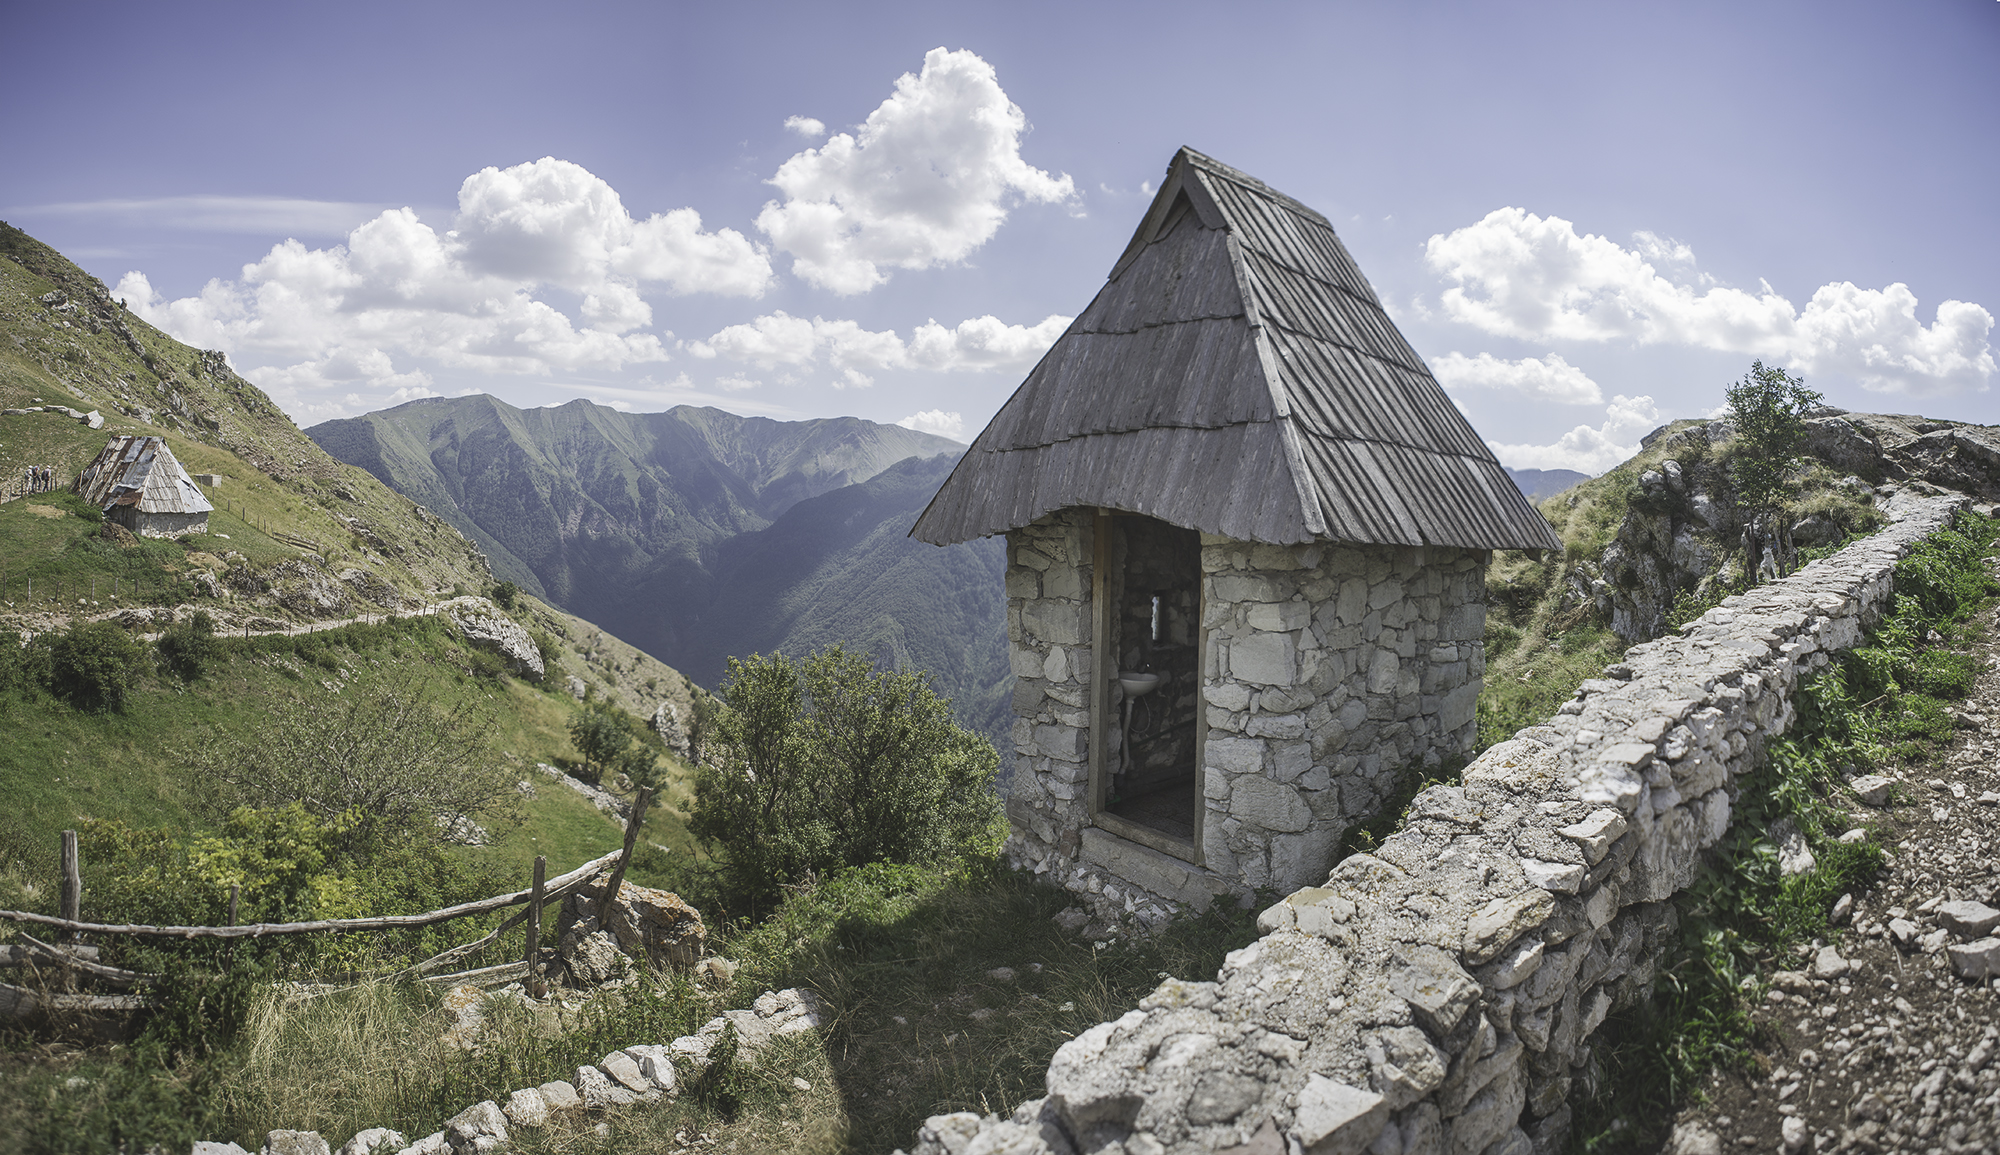 Lukomir, Bosnia's most isolated mountain village.